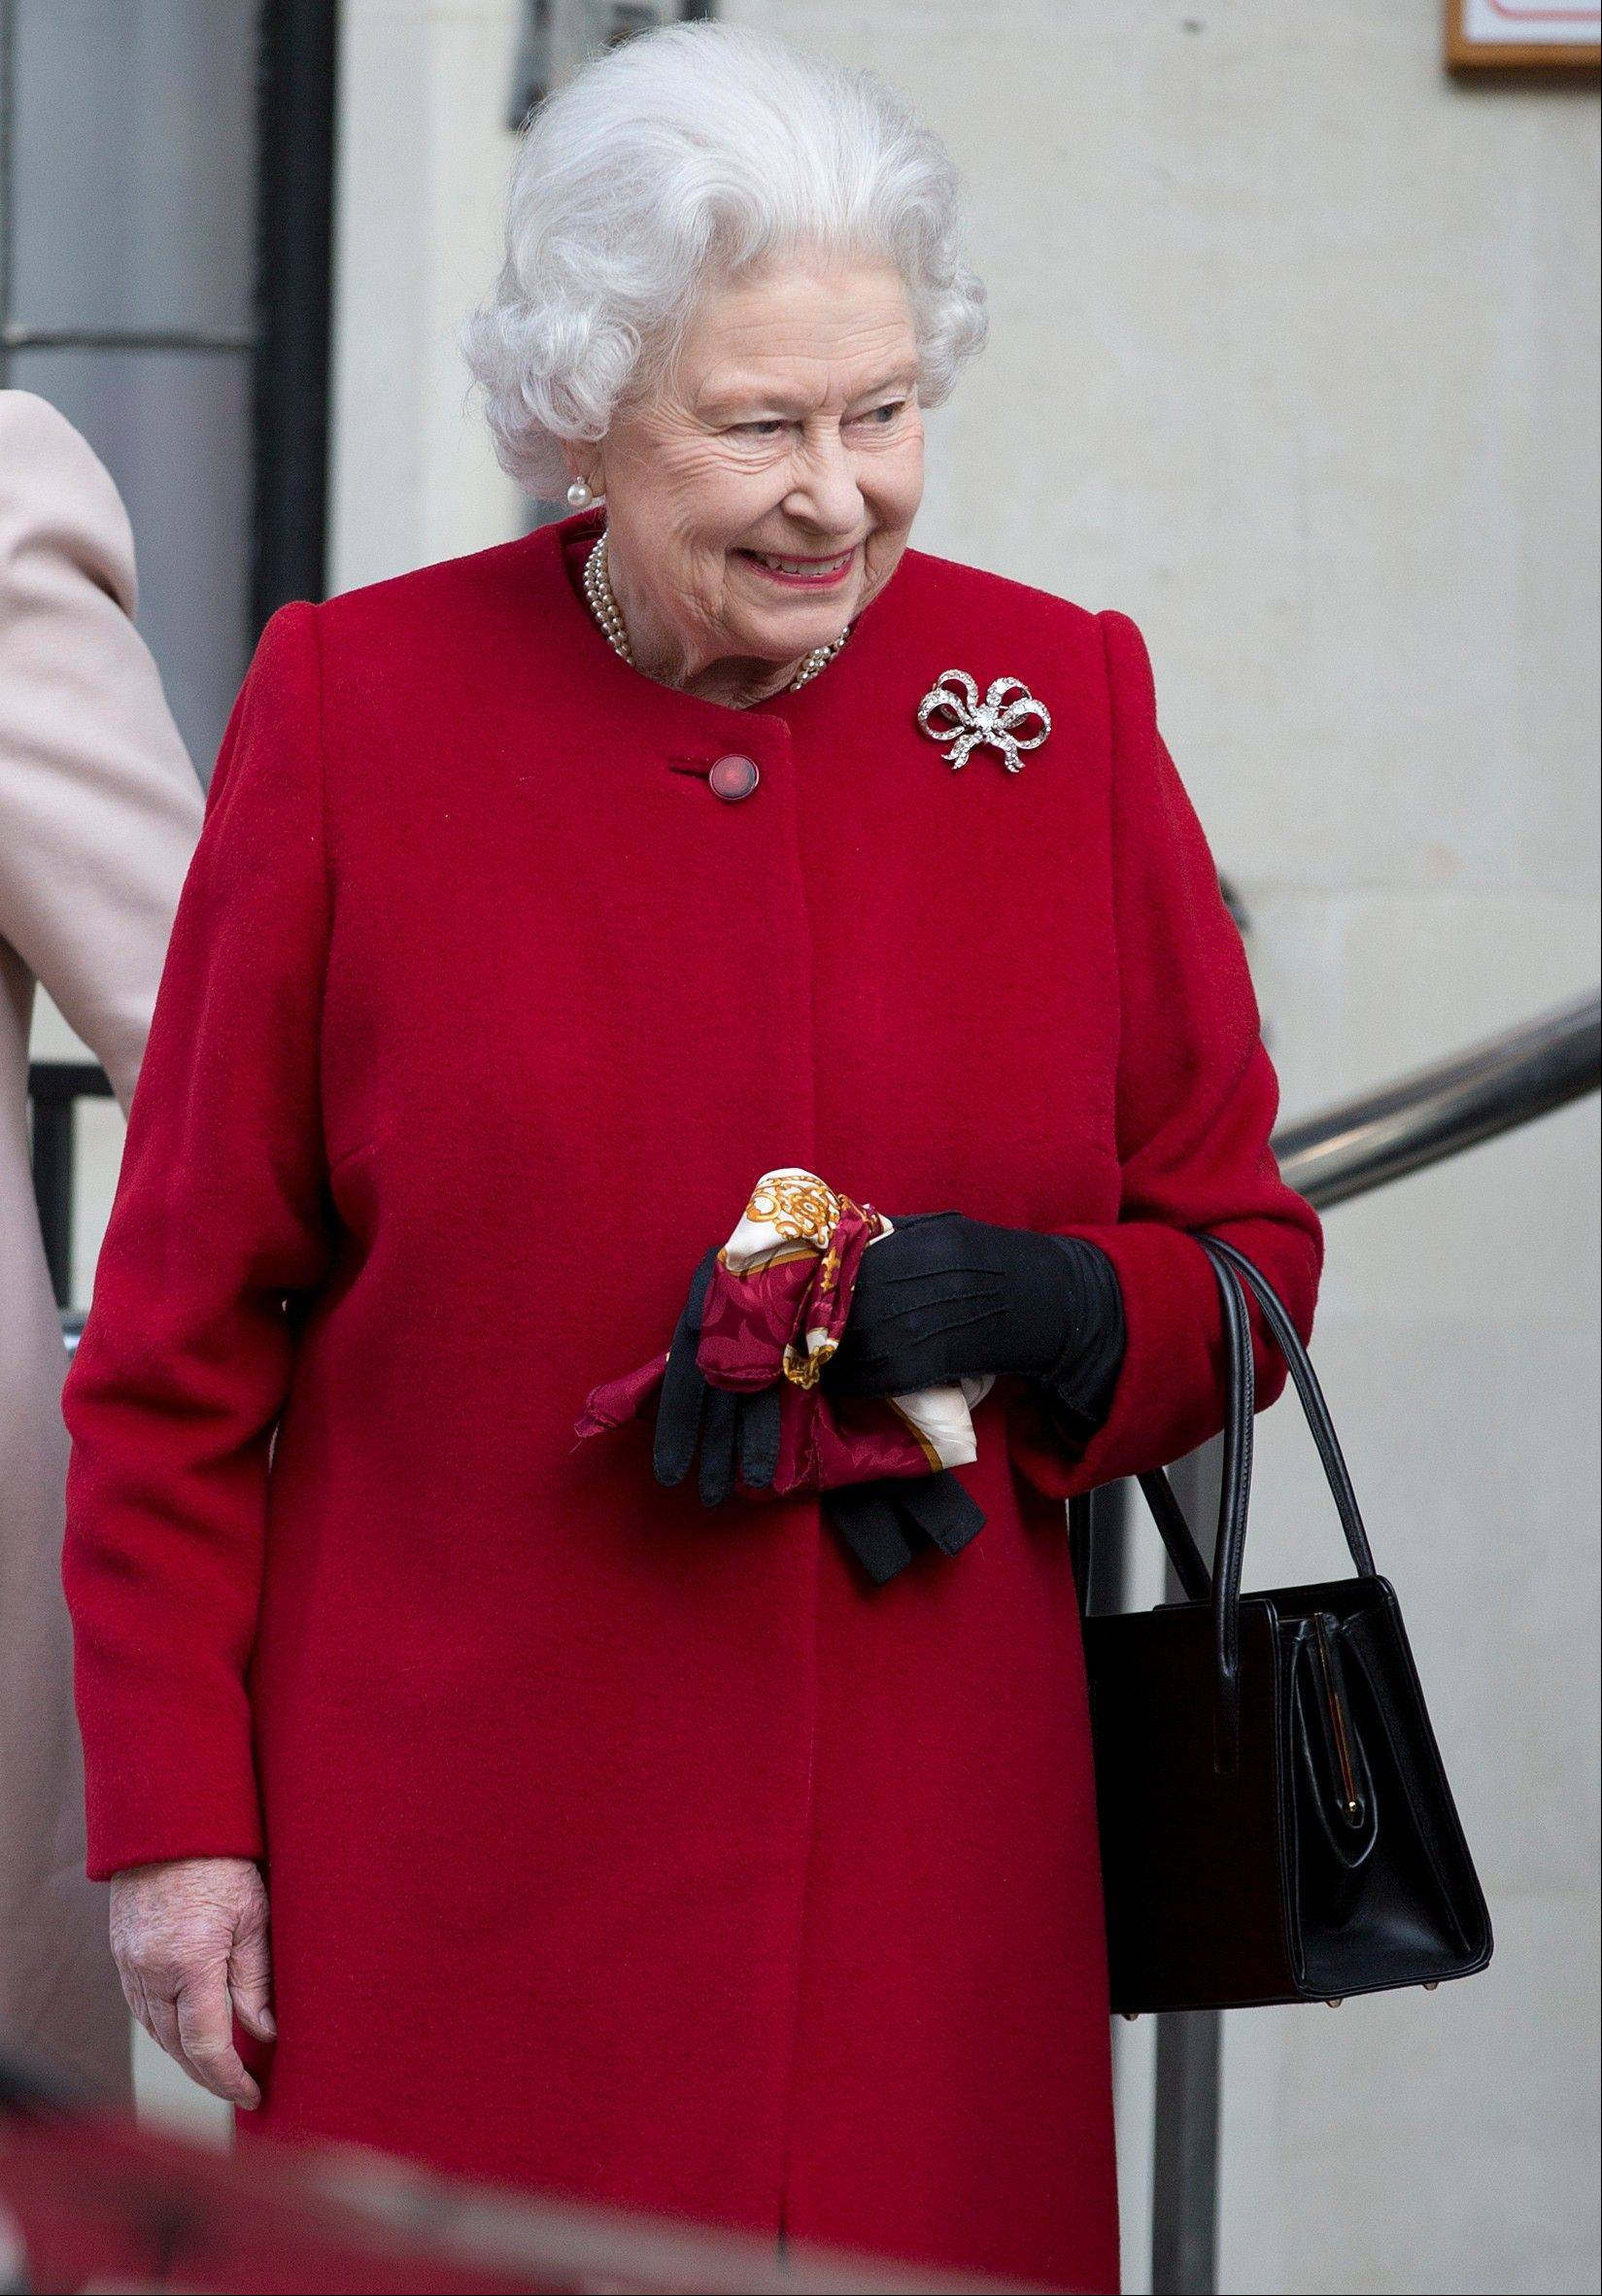 Britain's Queen Elizabeth II leaves the King Edward VII hospital following a one-day stay caused by a stomach ailment, London Monday, March 4, 2013. The 86-year-old queen fell ill Friday and was being treated at Windsor Castle until Sunday, when she was moved to a central London hospital as a precaution.